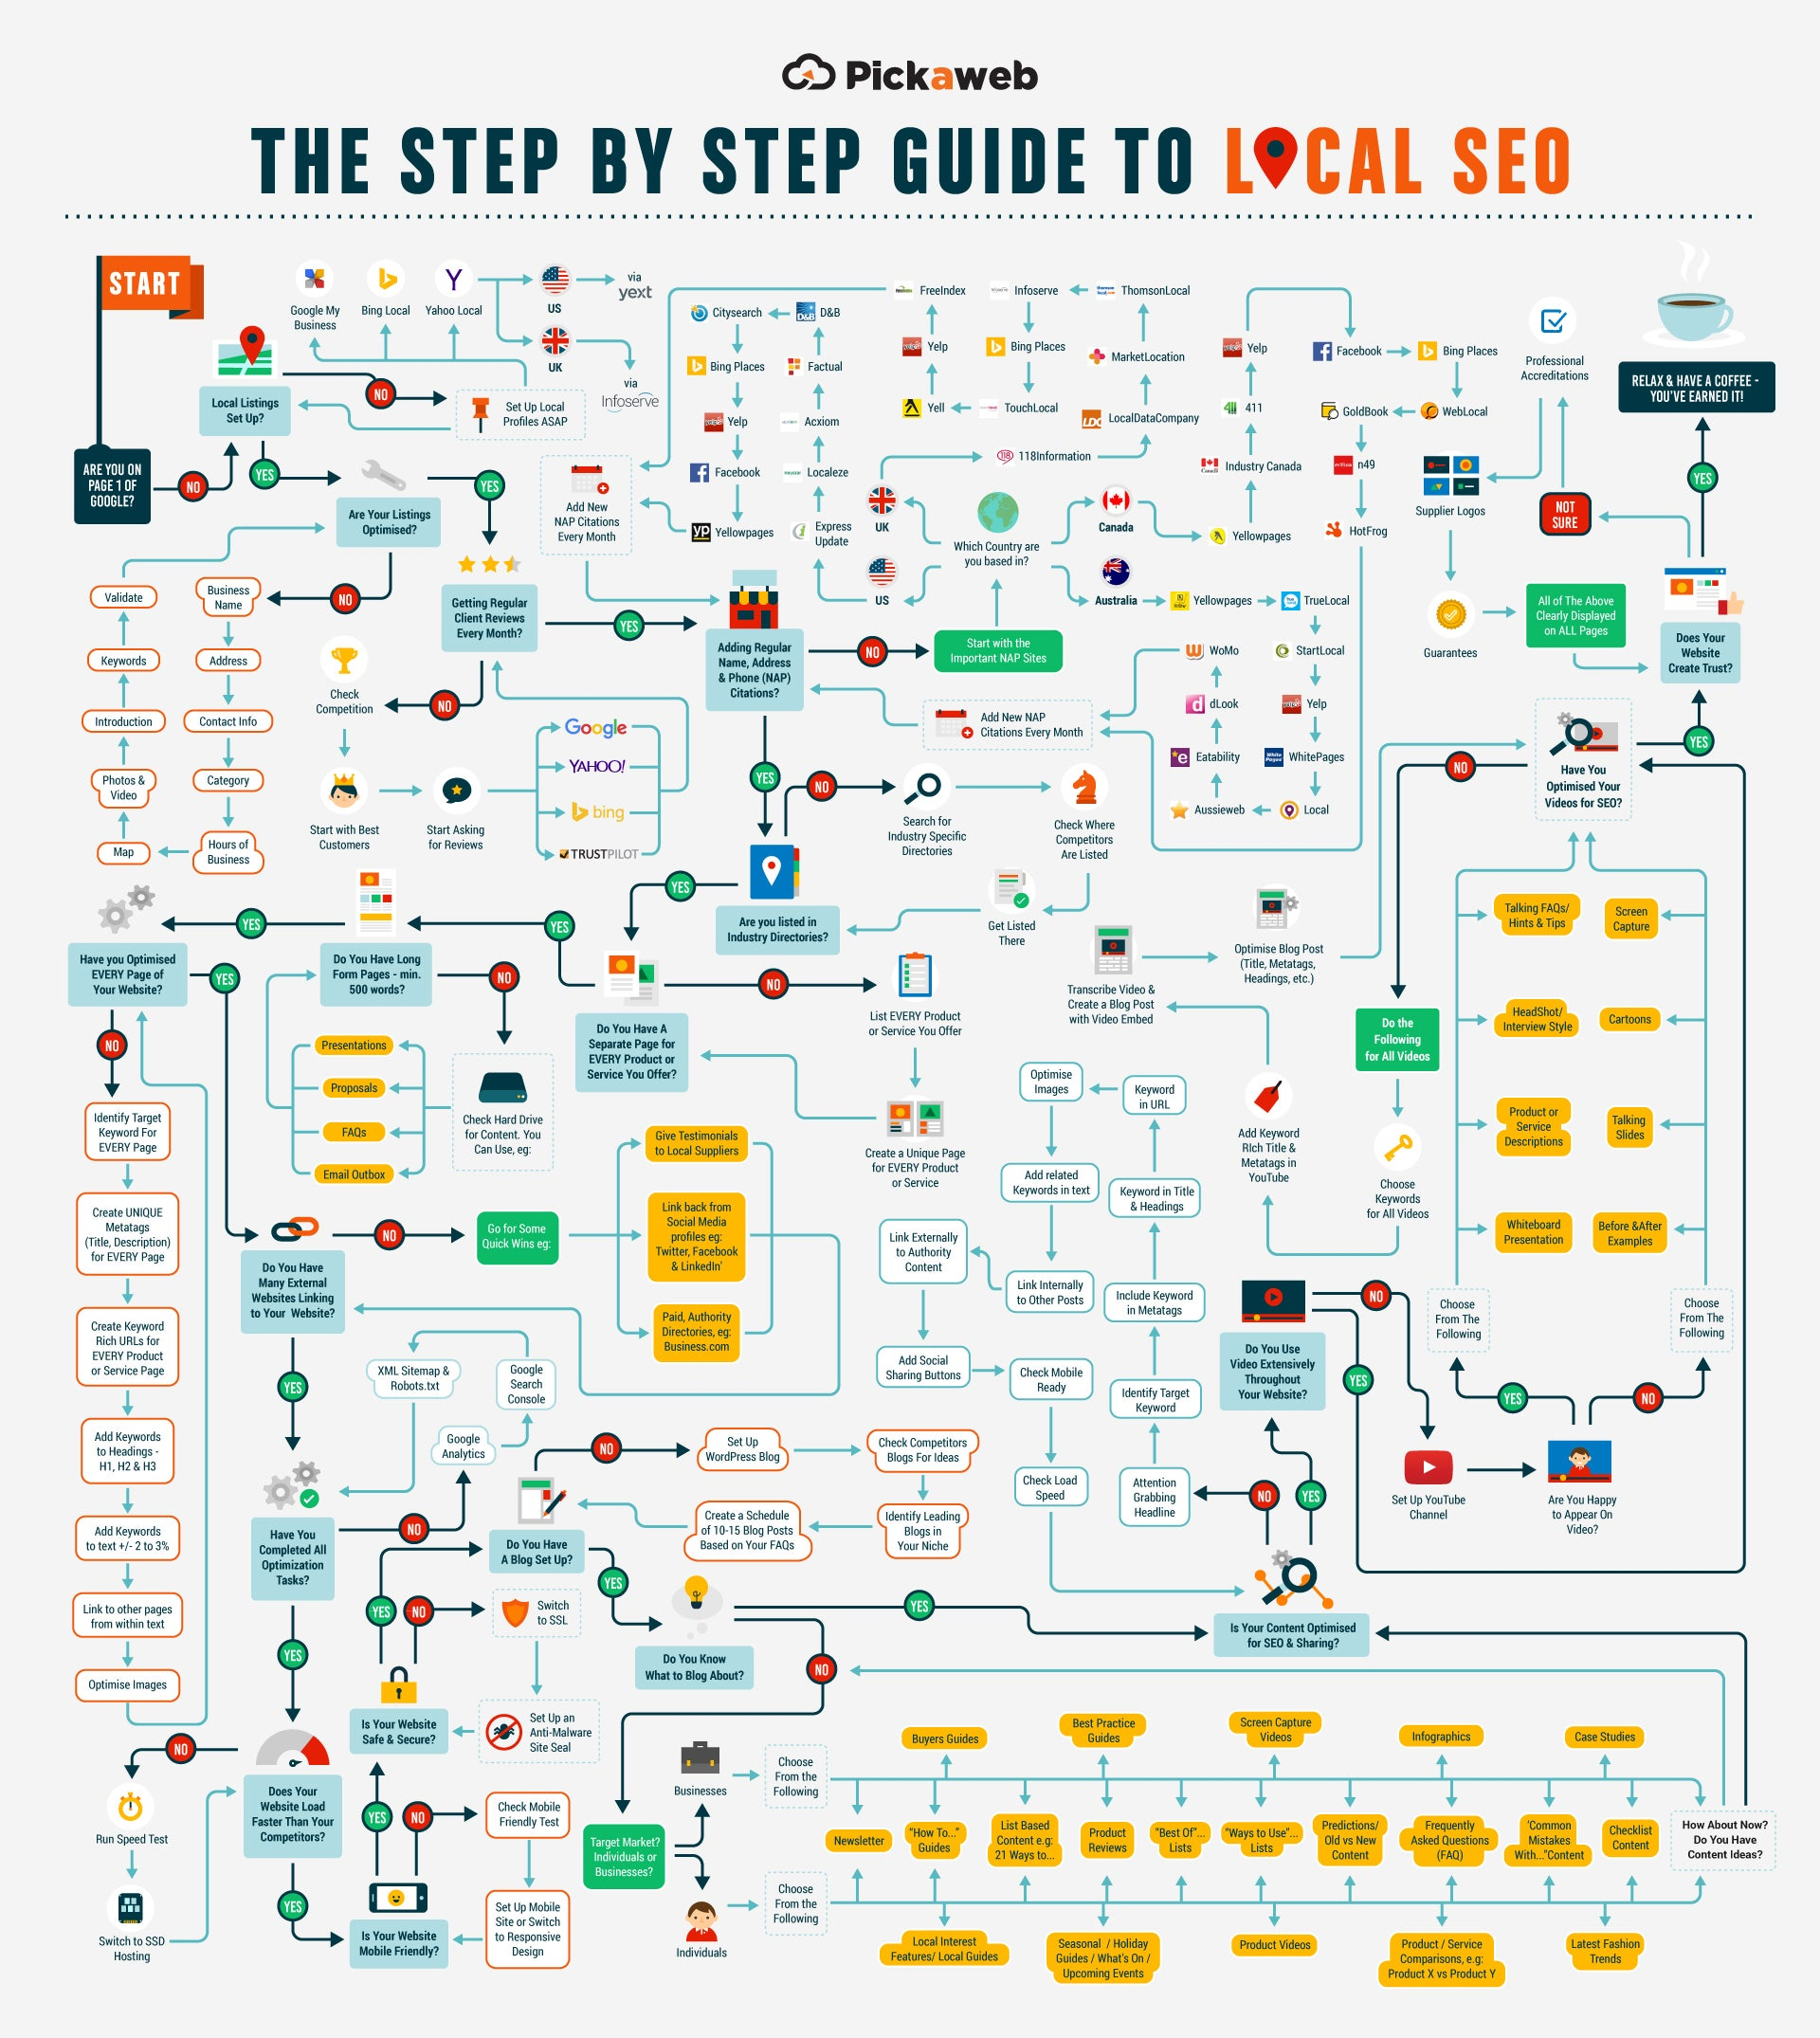 Boost Your Rankings With the Ultimate Local SEO Cheat Sheet (Infographic)